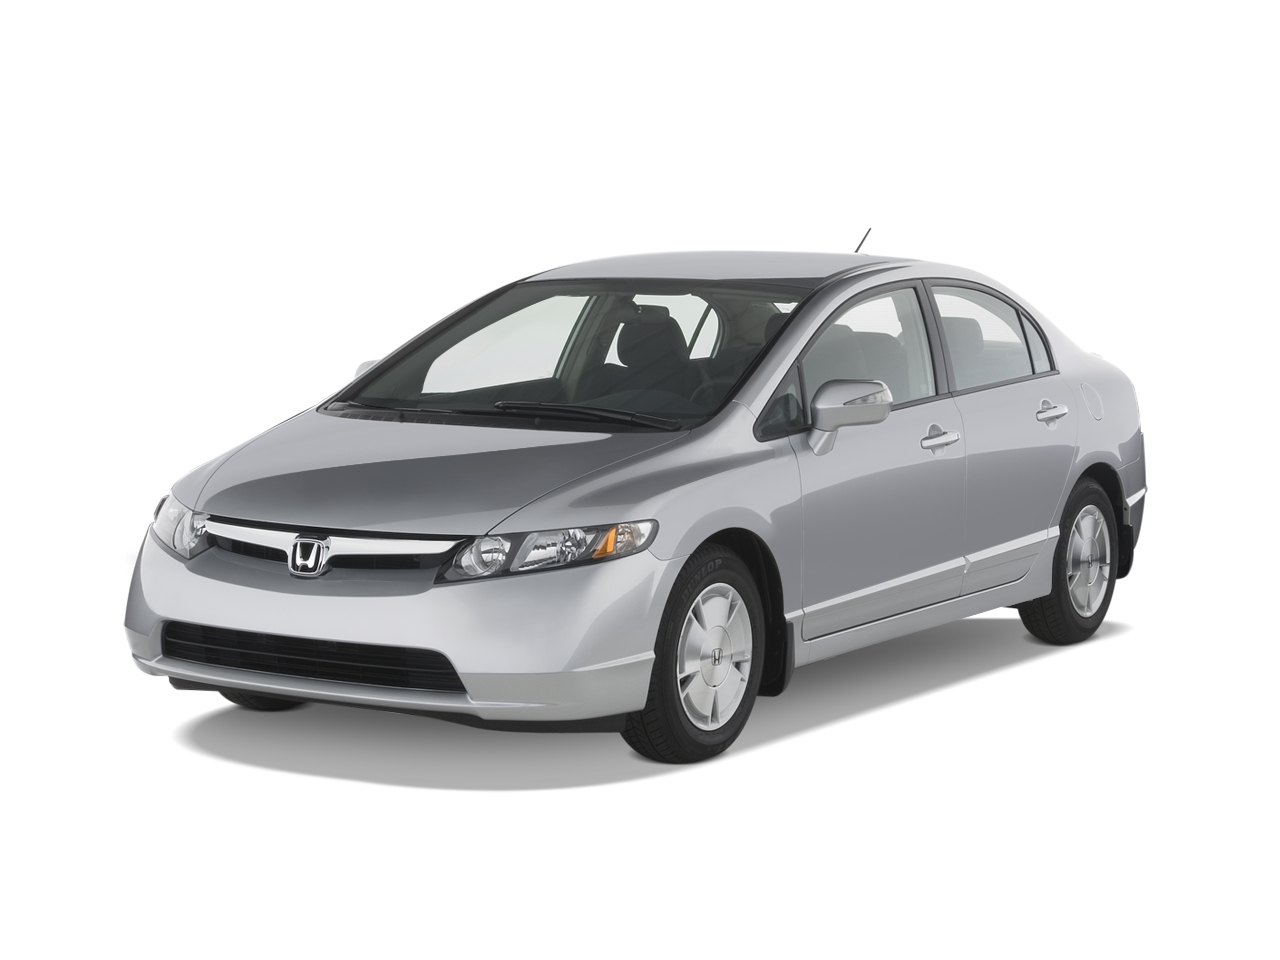 Why An Old, Used Honda Civic Hybrid Is Good For Your Health